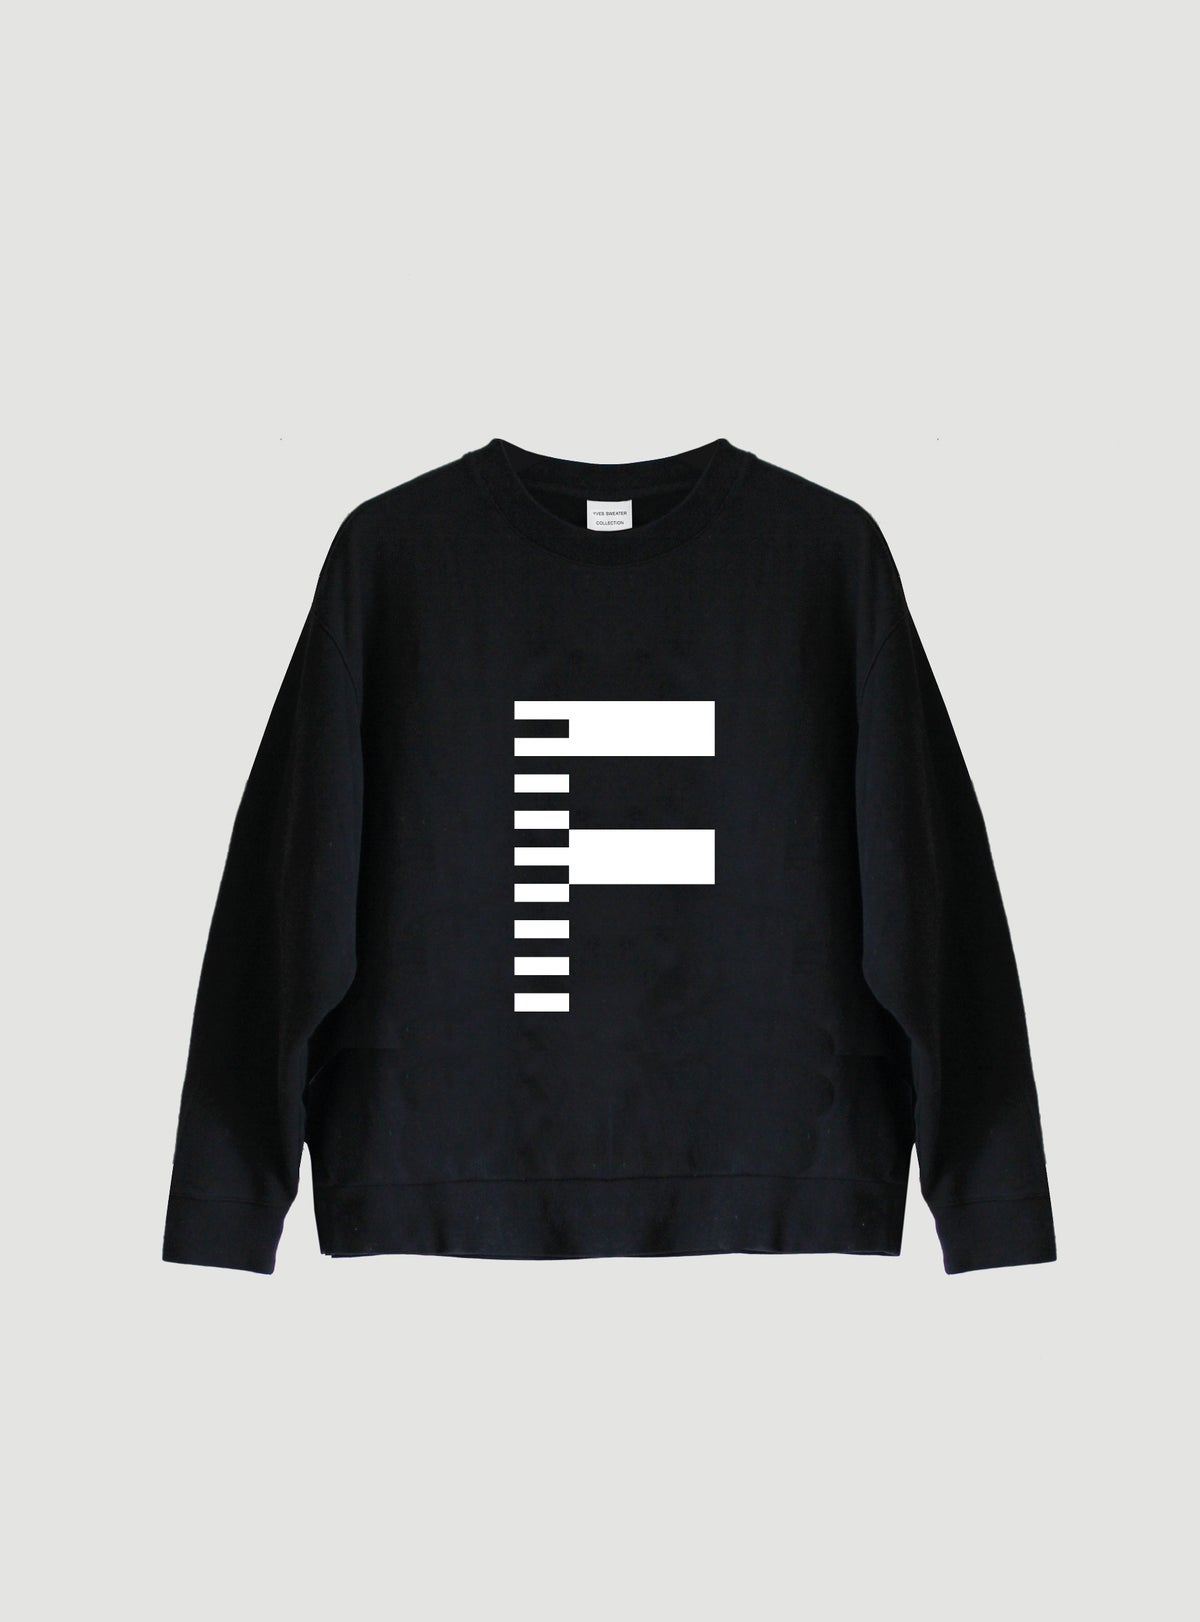 Image of F Sweater